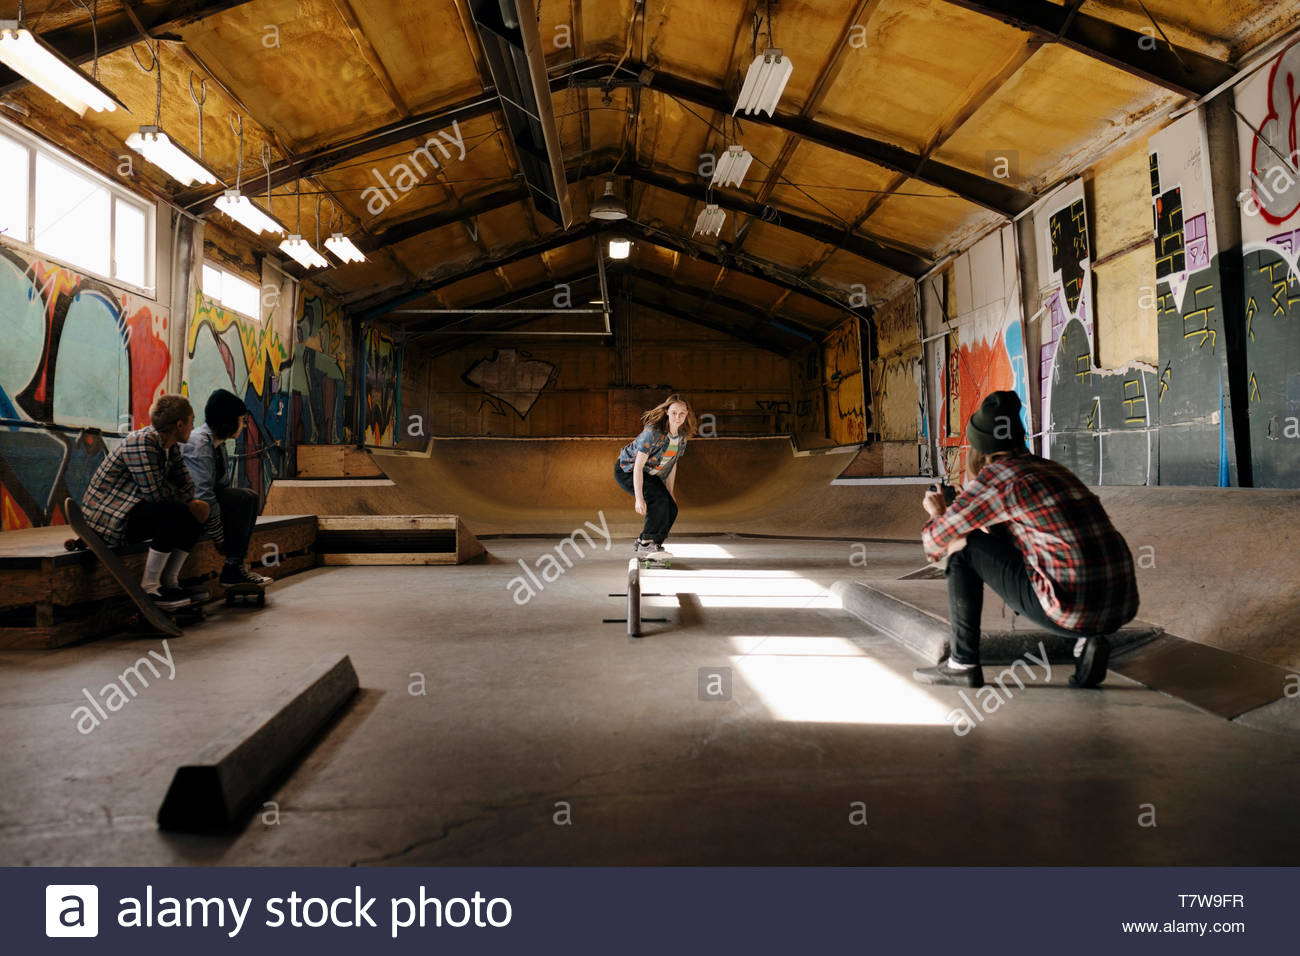 Young woman with camera phone filming friend skateboarding at indoor skate park - Stock Image